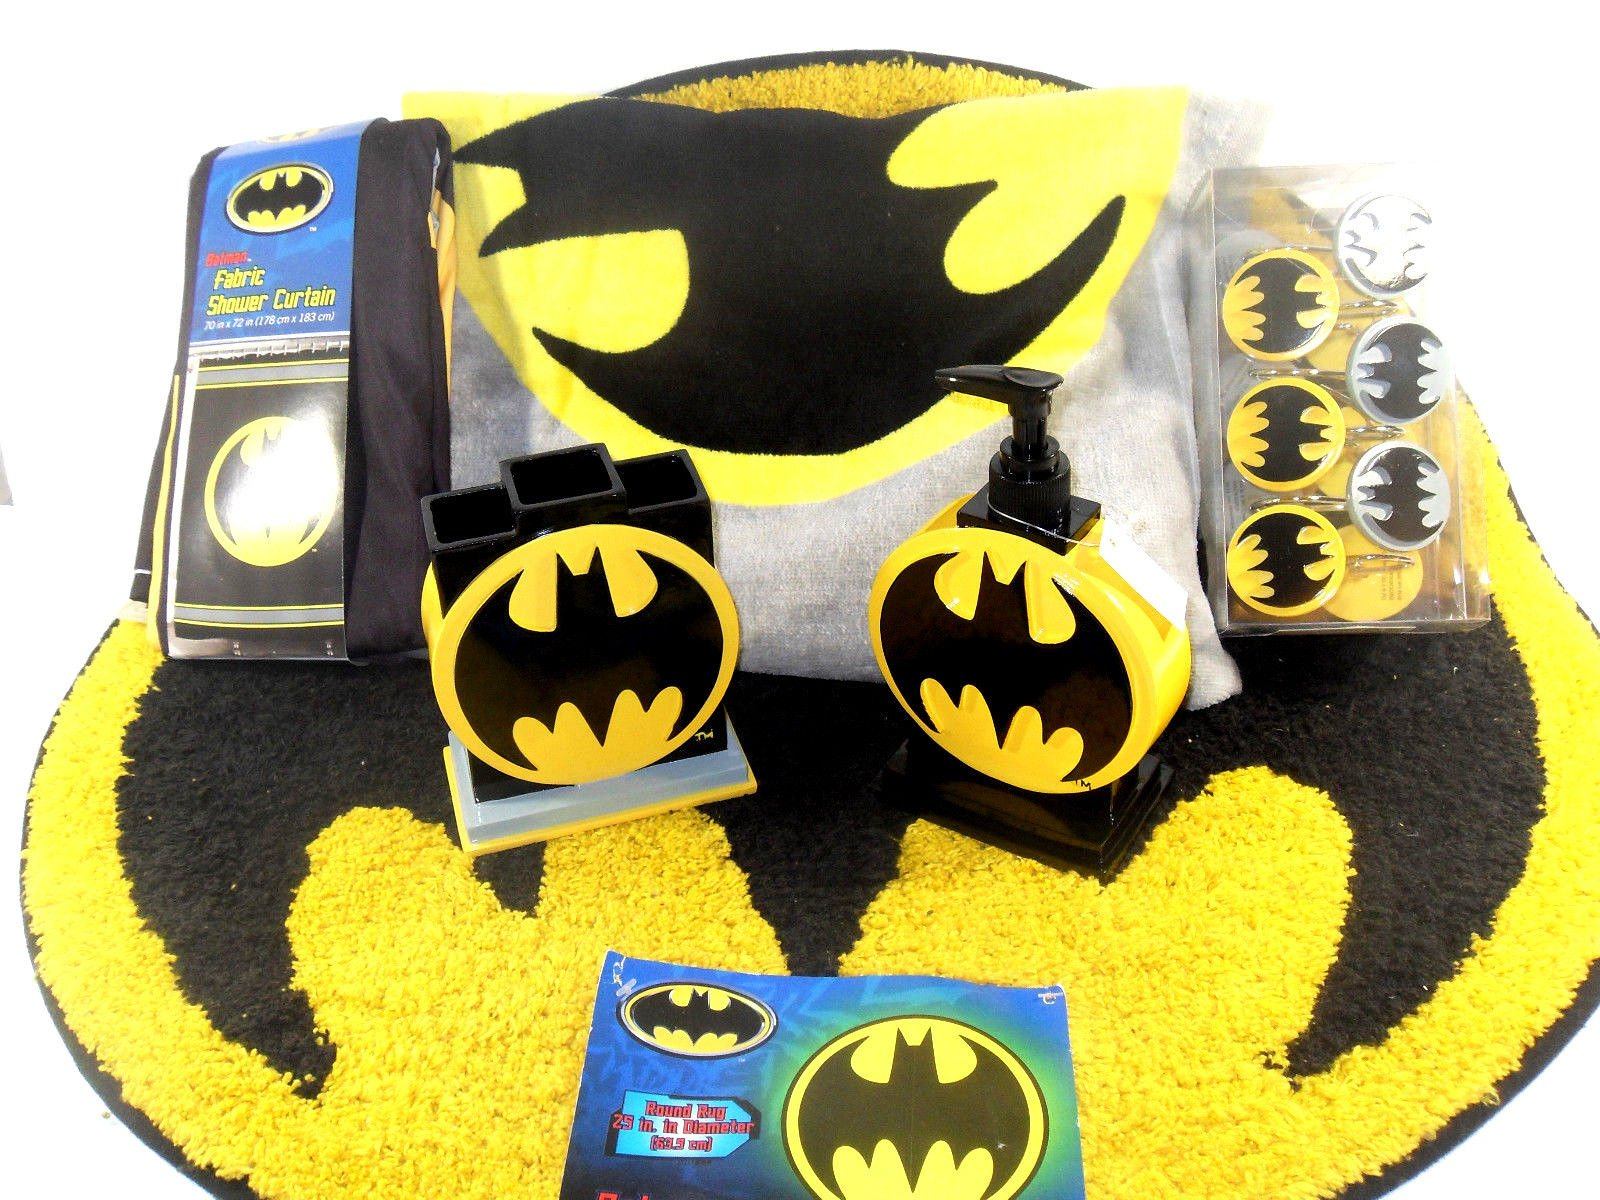 Batman Bathroom Set, Shower Curtain, Hooks, Bath Rug, Bath Towel, Pump Lotion, Toothbrush Holder by Batman (Image #1)